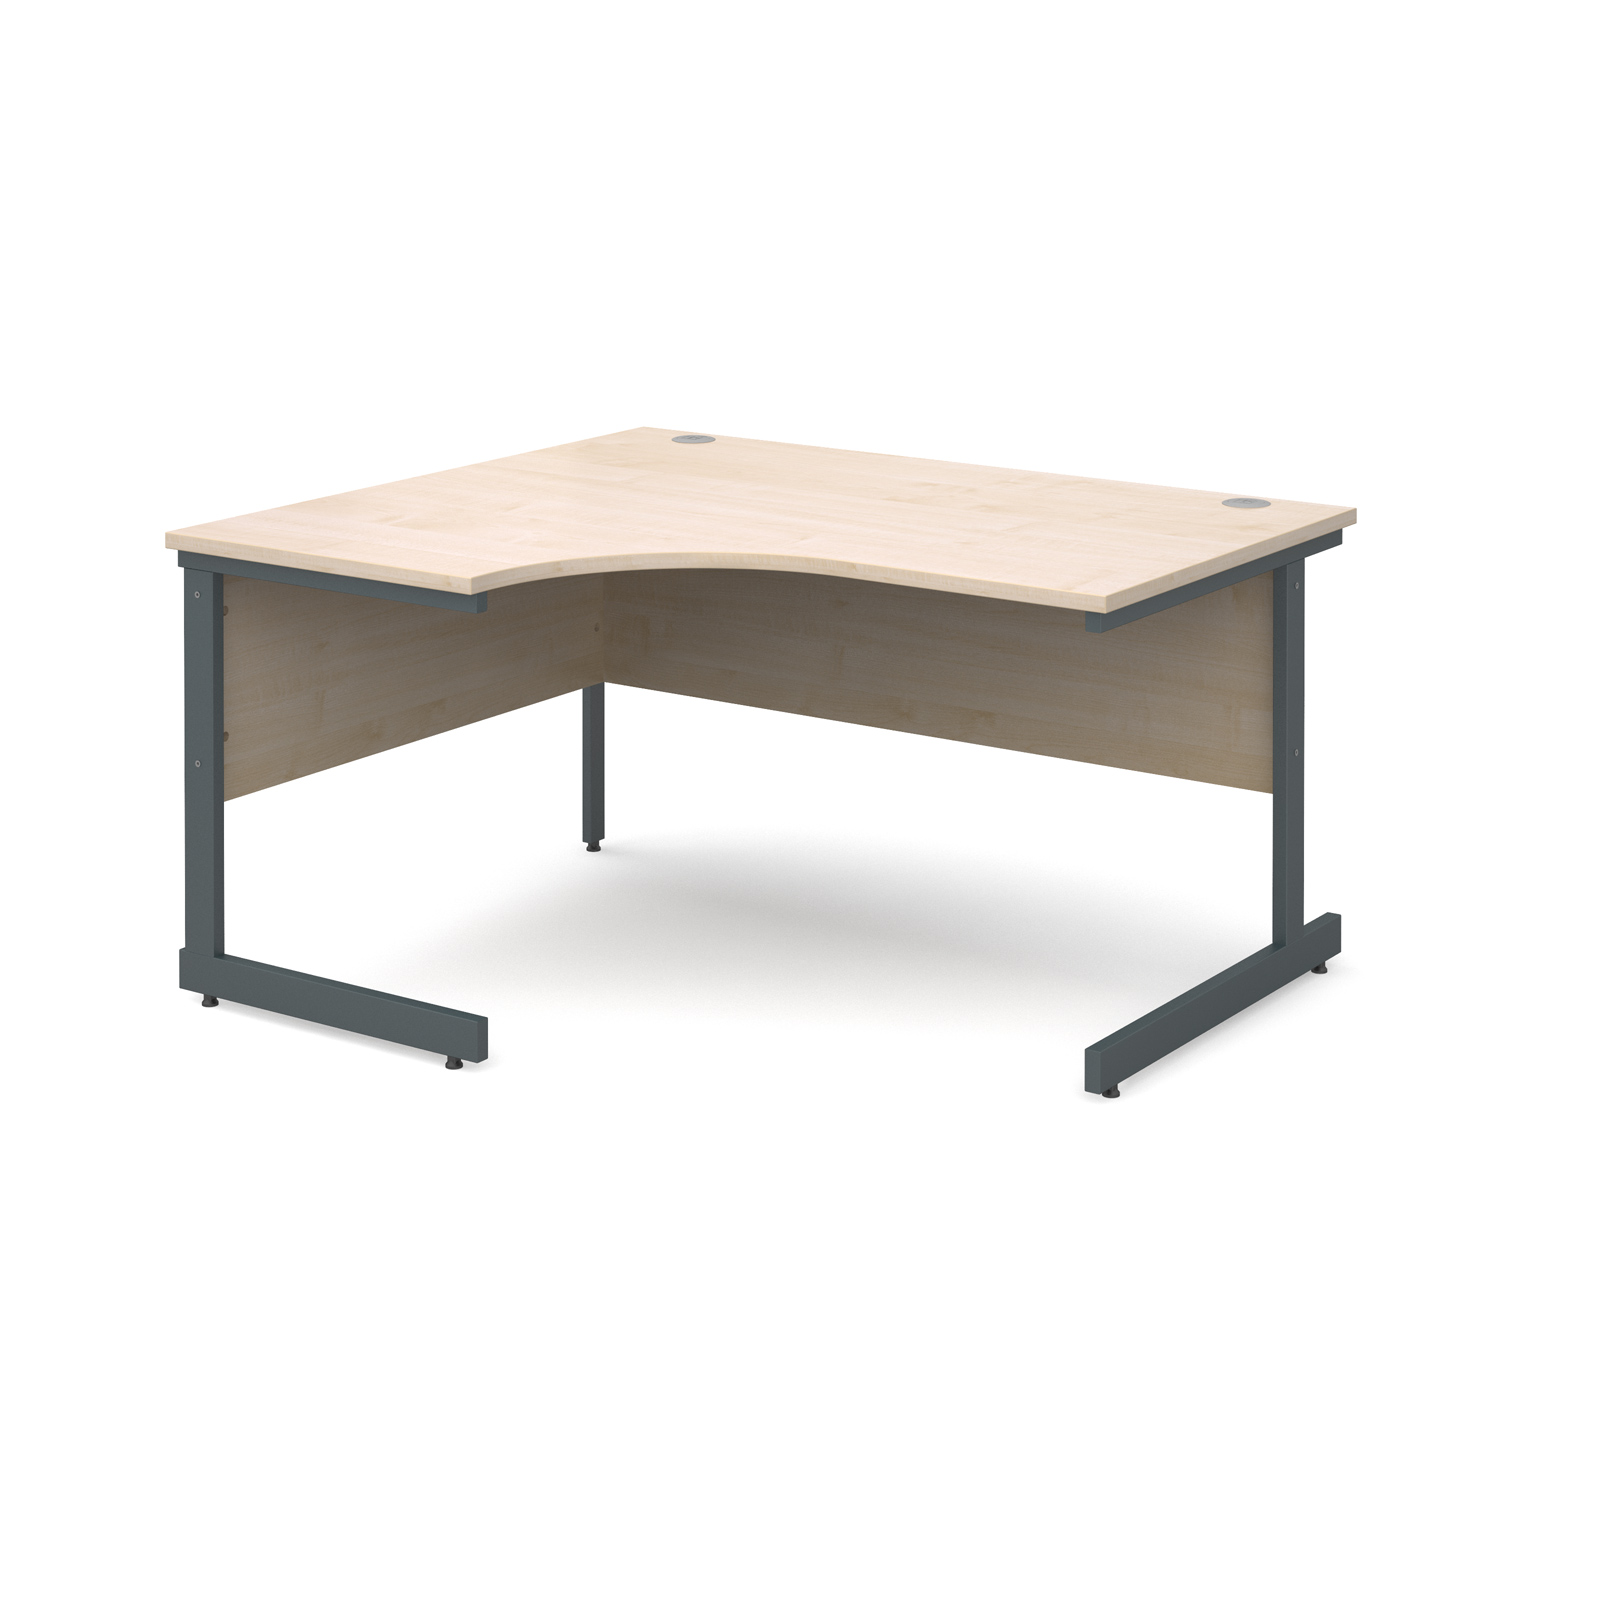 Dams Contract I Maple Desk | Corner